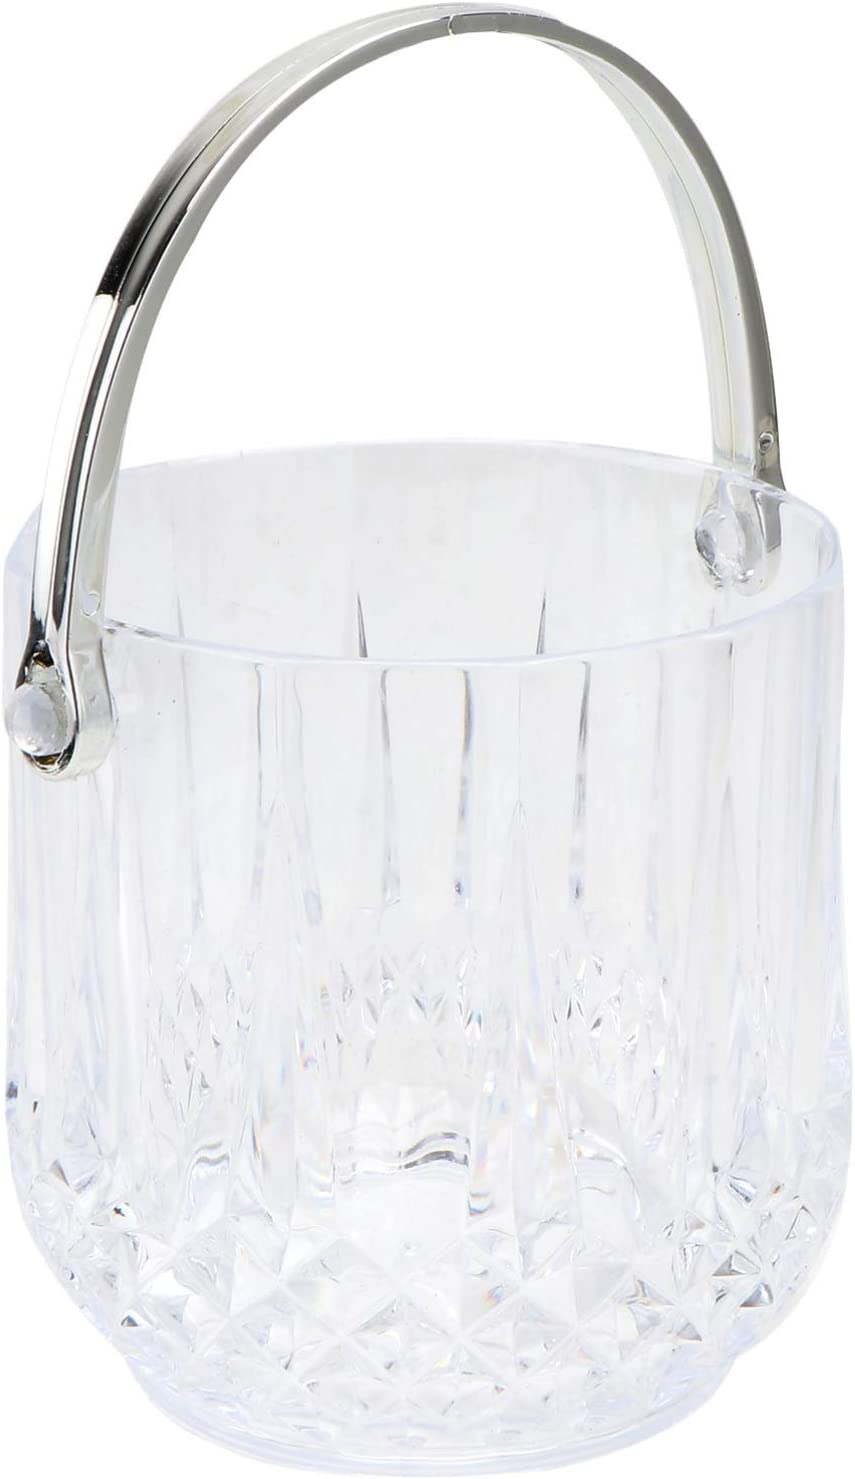 Cabilock Ice Safety and trust Bucket Break Wine Resistant C Sales for sale Champagne